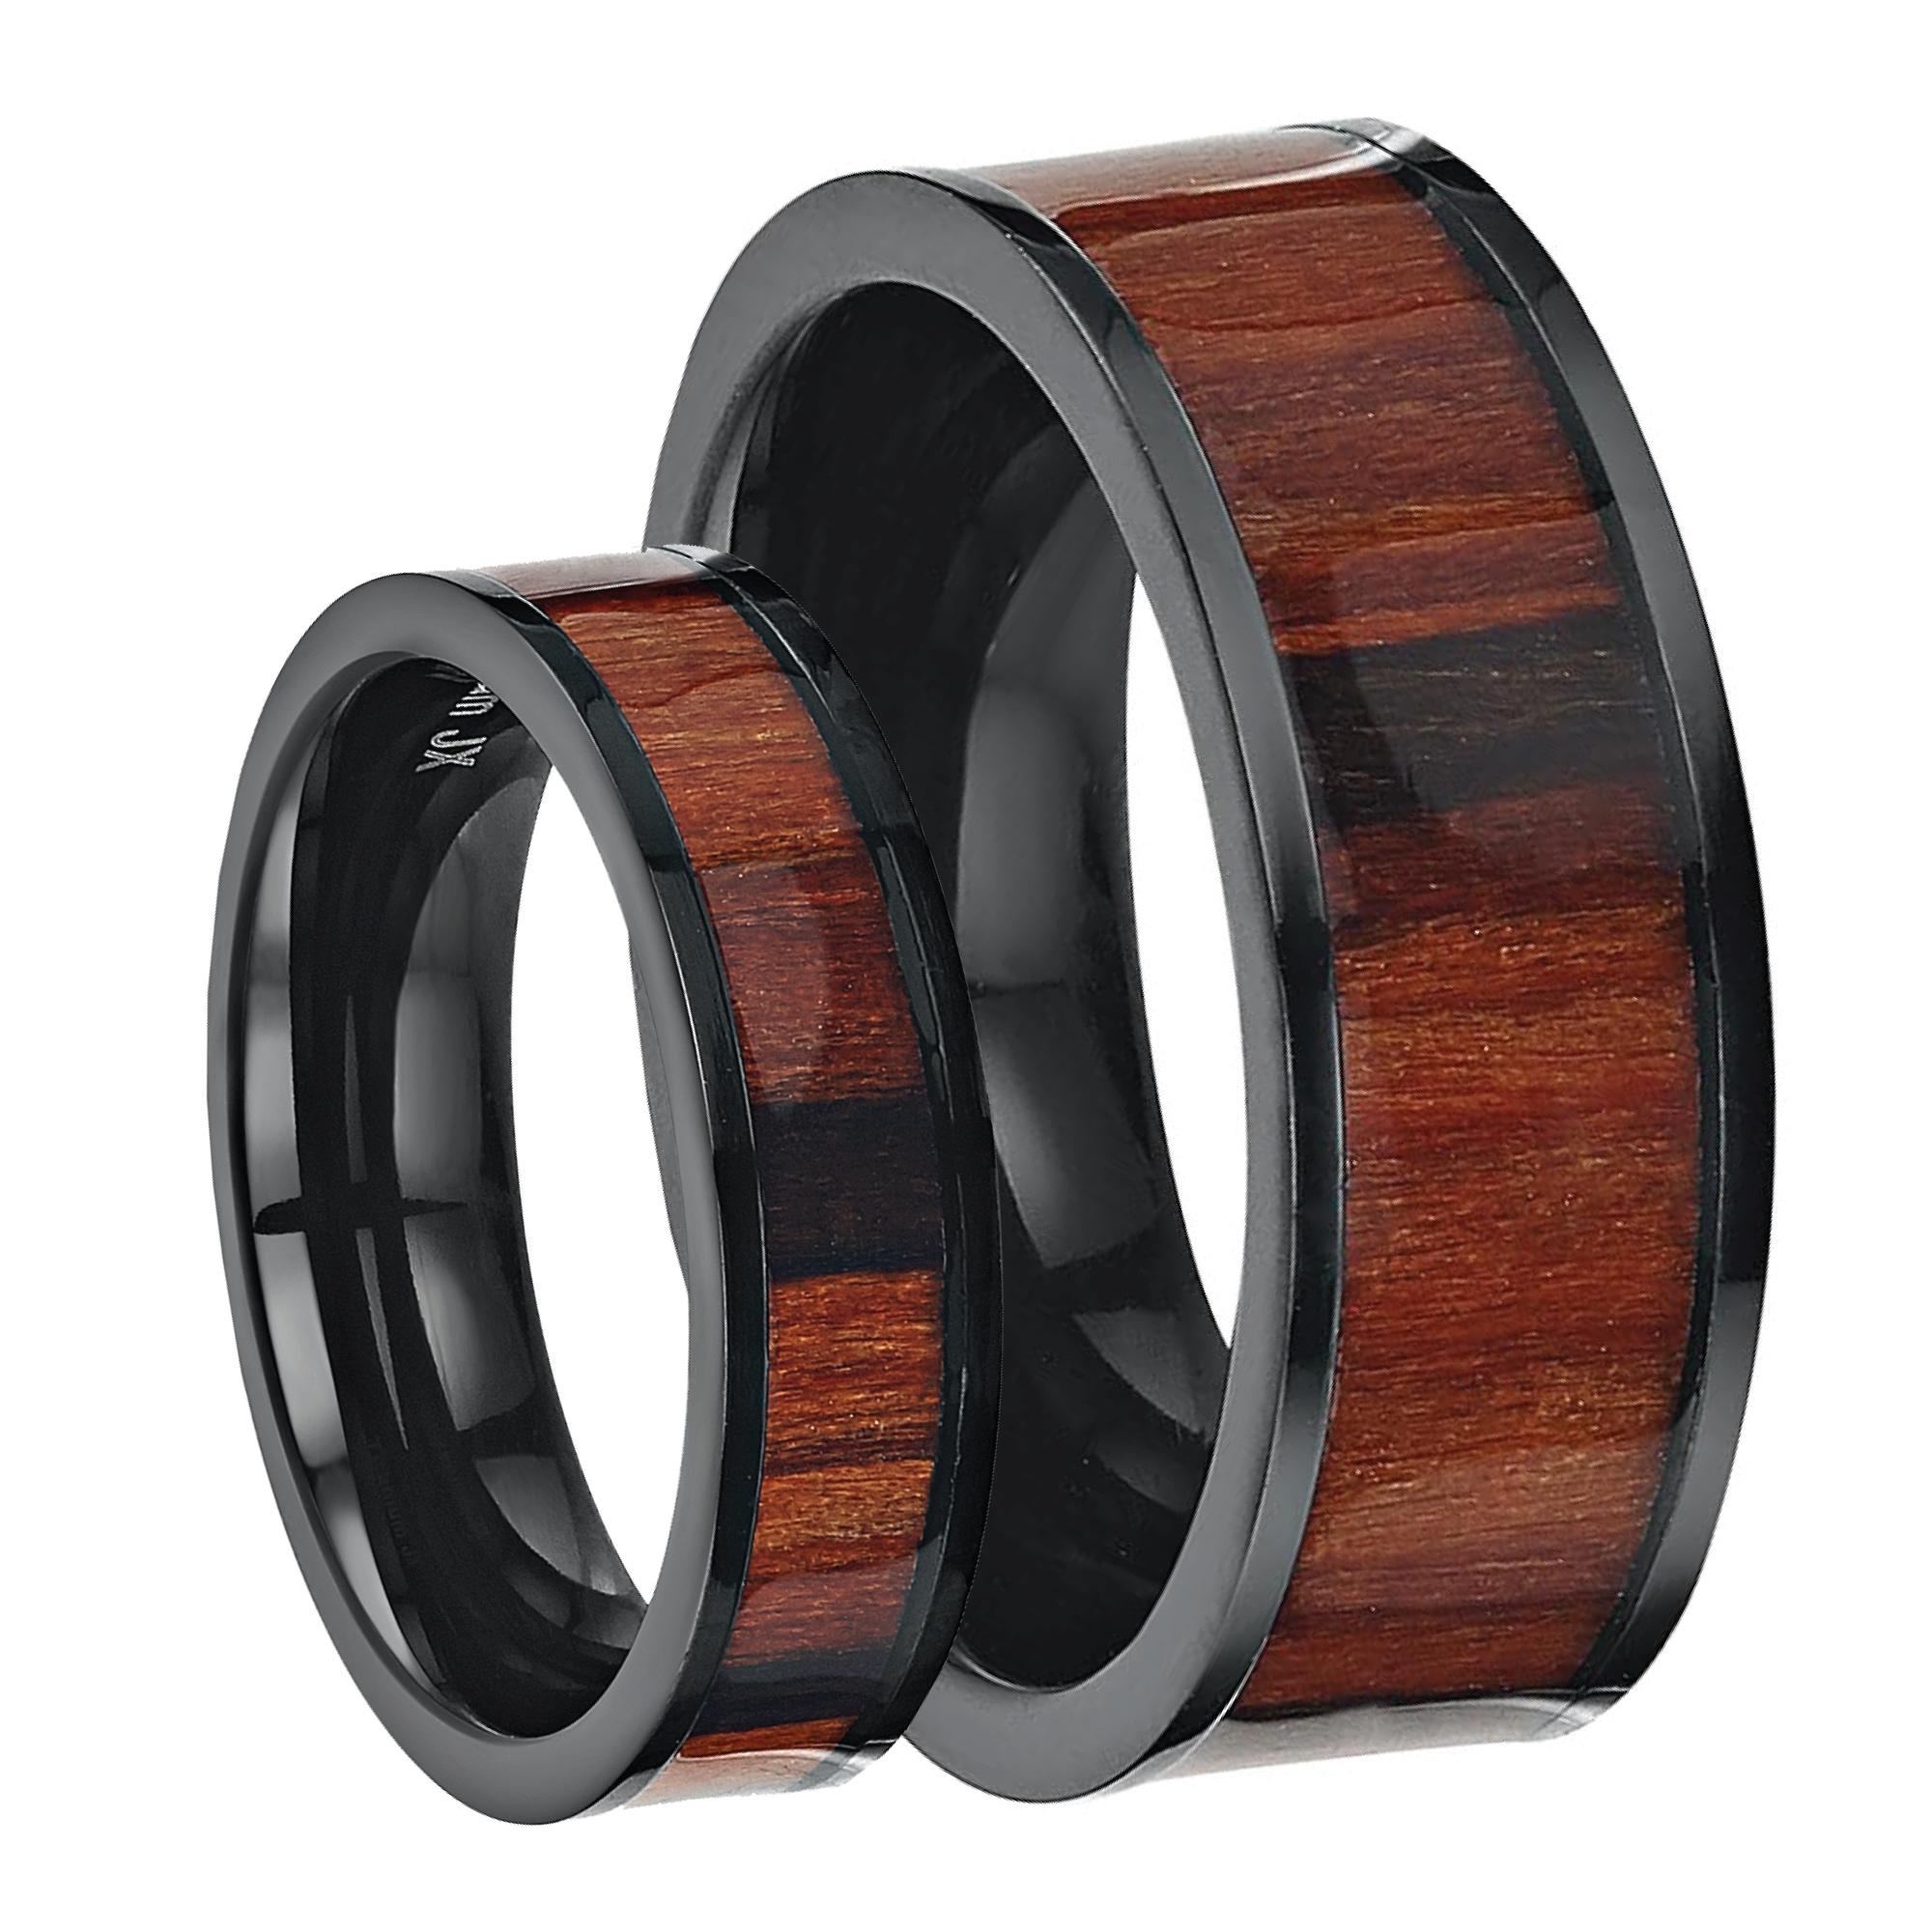 His & Hers Black Titanium Wedding Ring Bands Koa Wood Inlay 6&8mm Rings